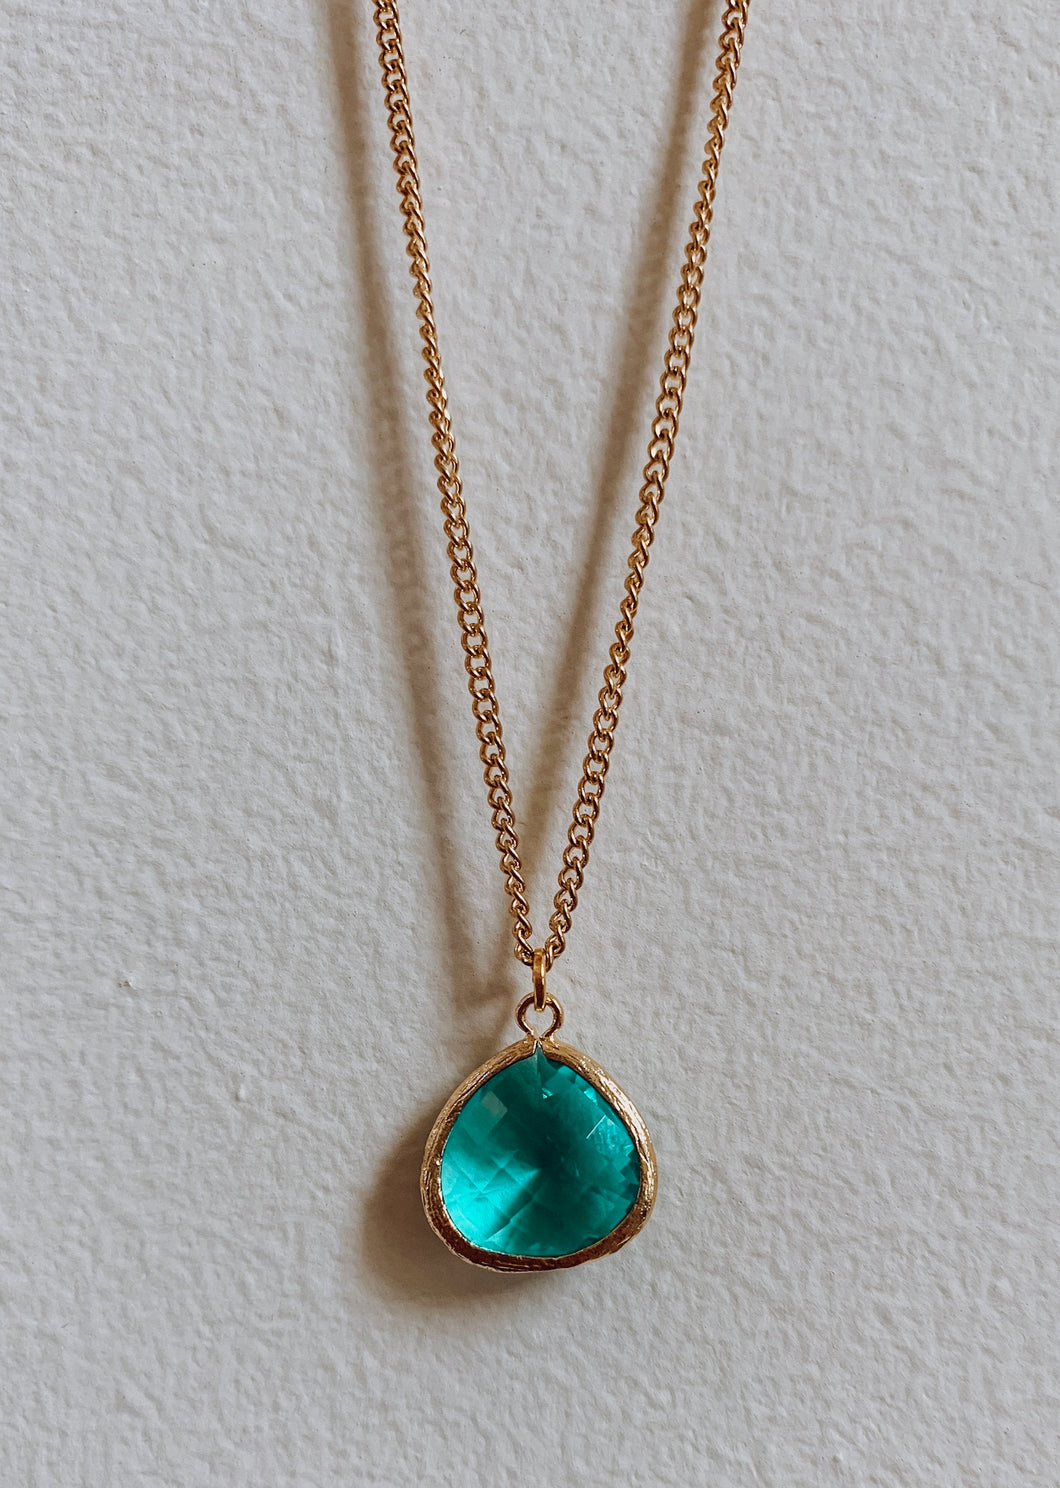 24k Gold Plated Zircon Necklace